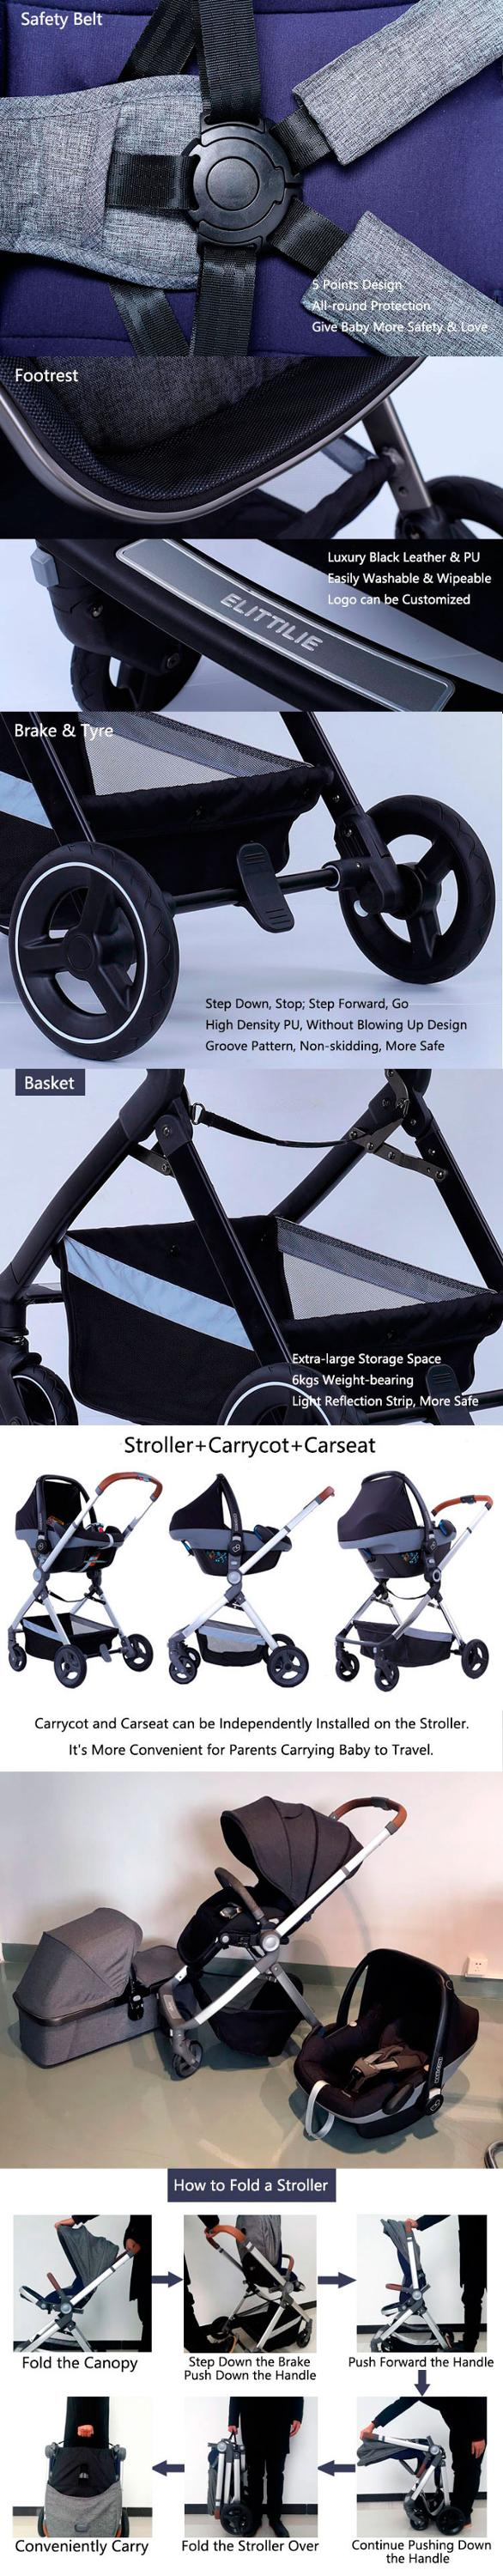 Baby stroller compact car  seat  poussette  baby  2-in-1  baby stroller